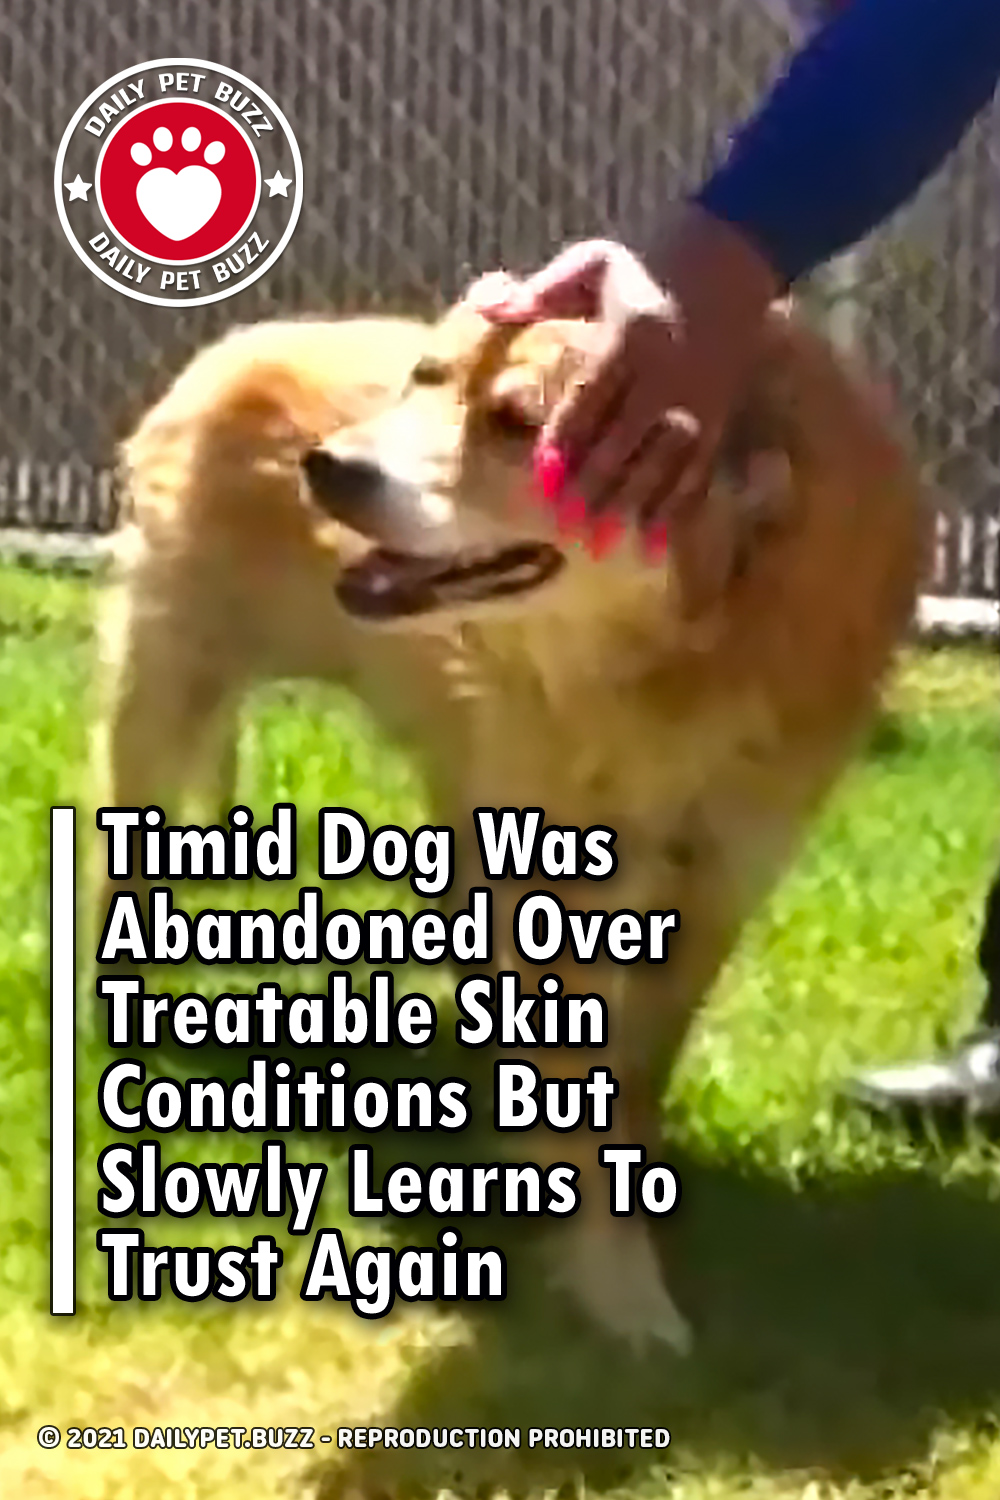 Timid Dog Was Abandoned Over Treatable Skin Conditions But Slowly Learns To Trust Again